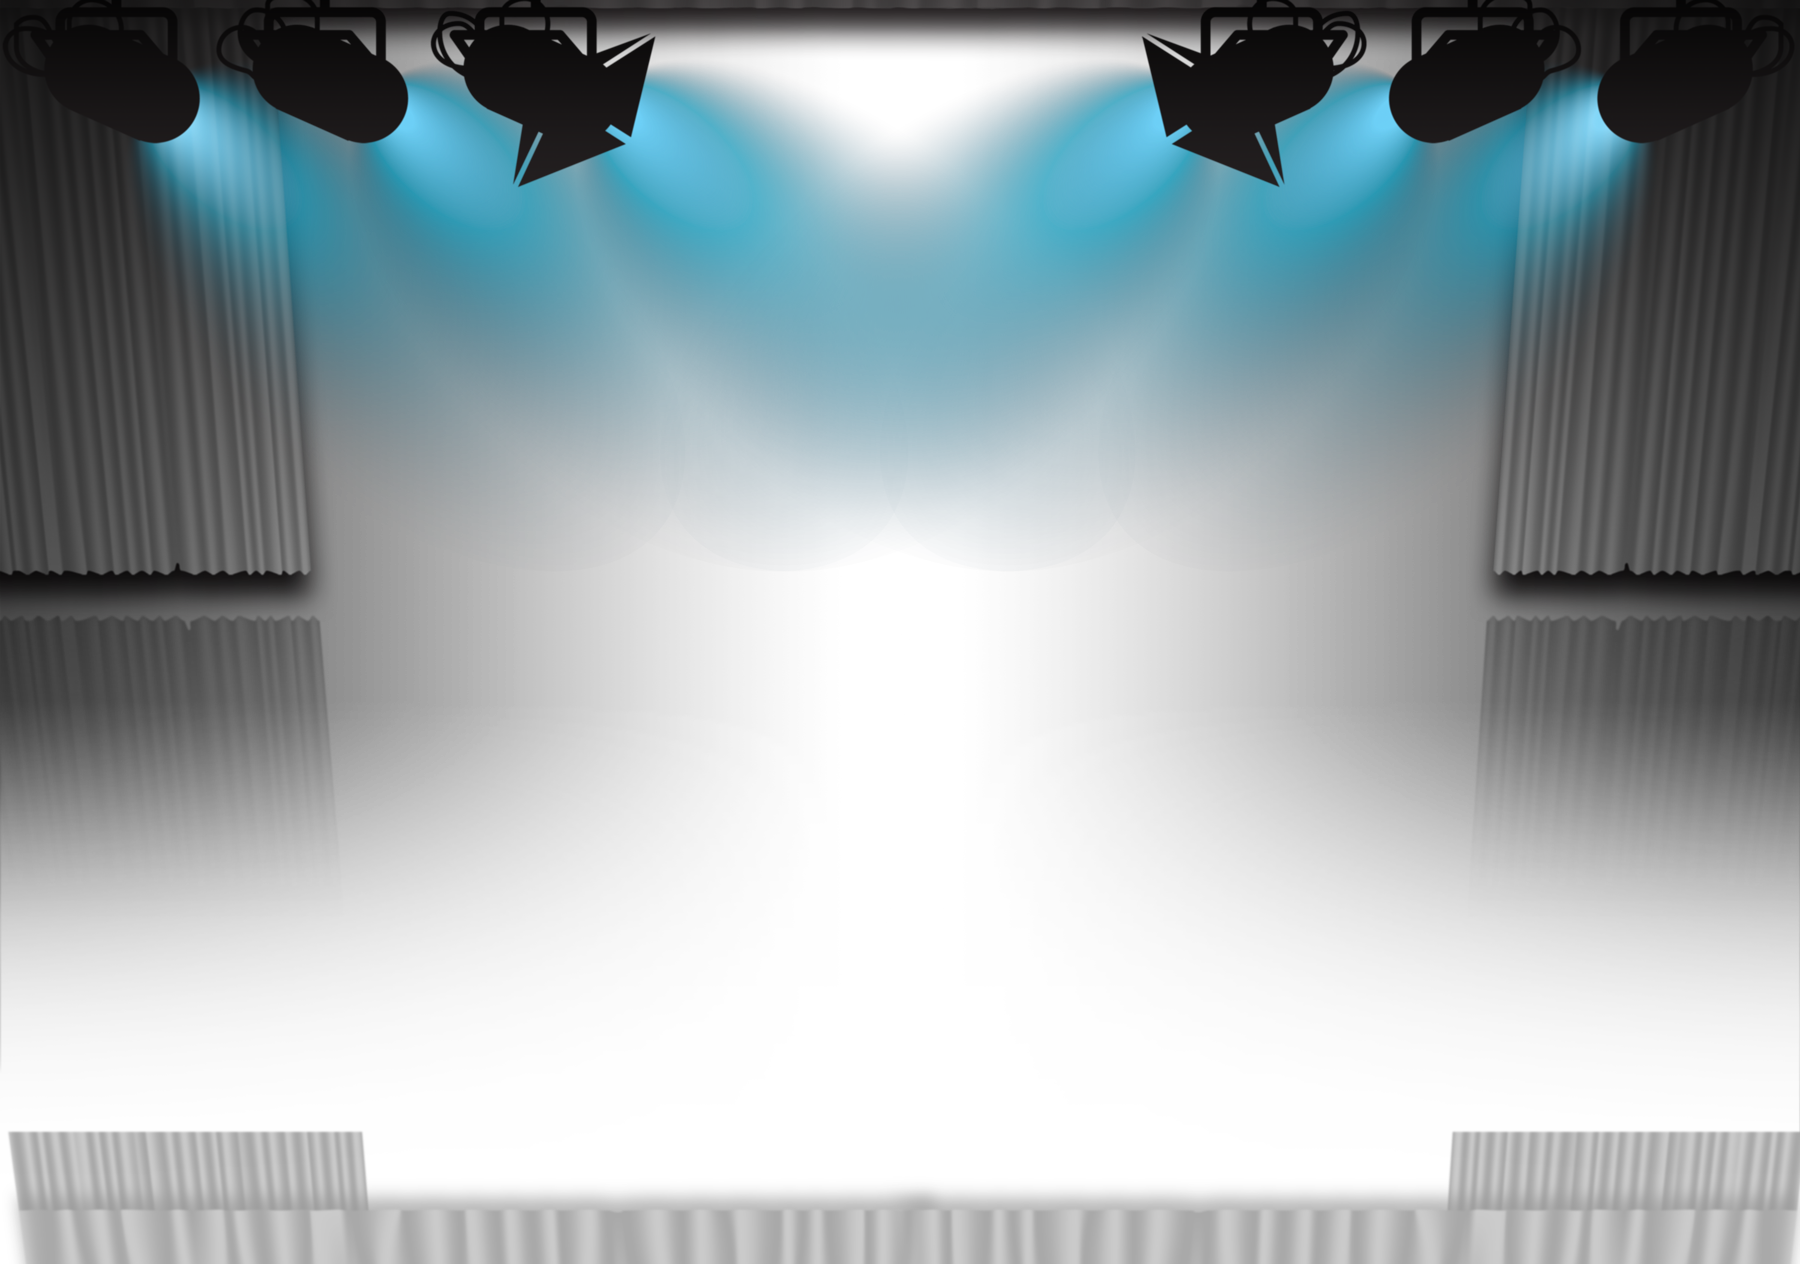 Stage lights background related keywords amp suggestions stage lights - Stage Spotlights Background Actor S Breakthrough Film Actor